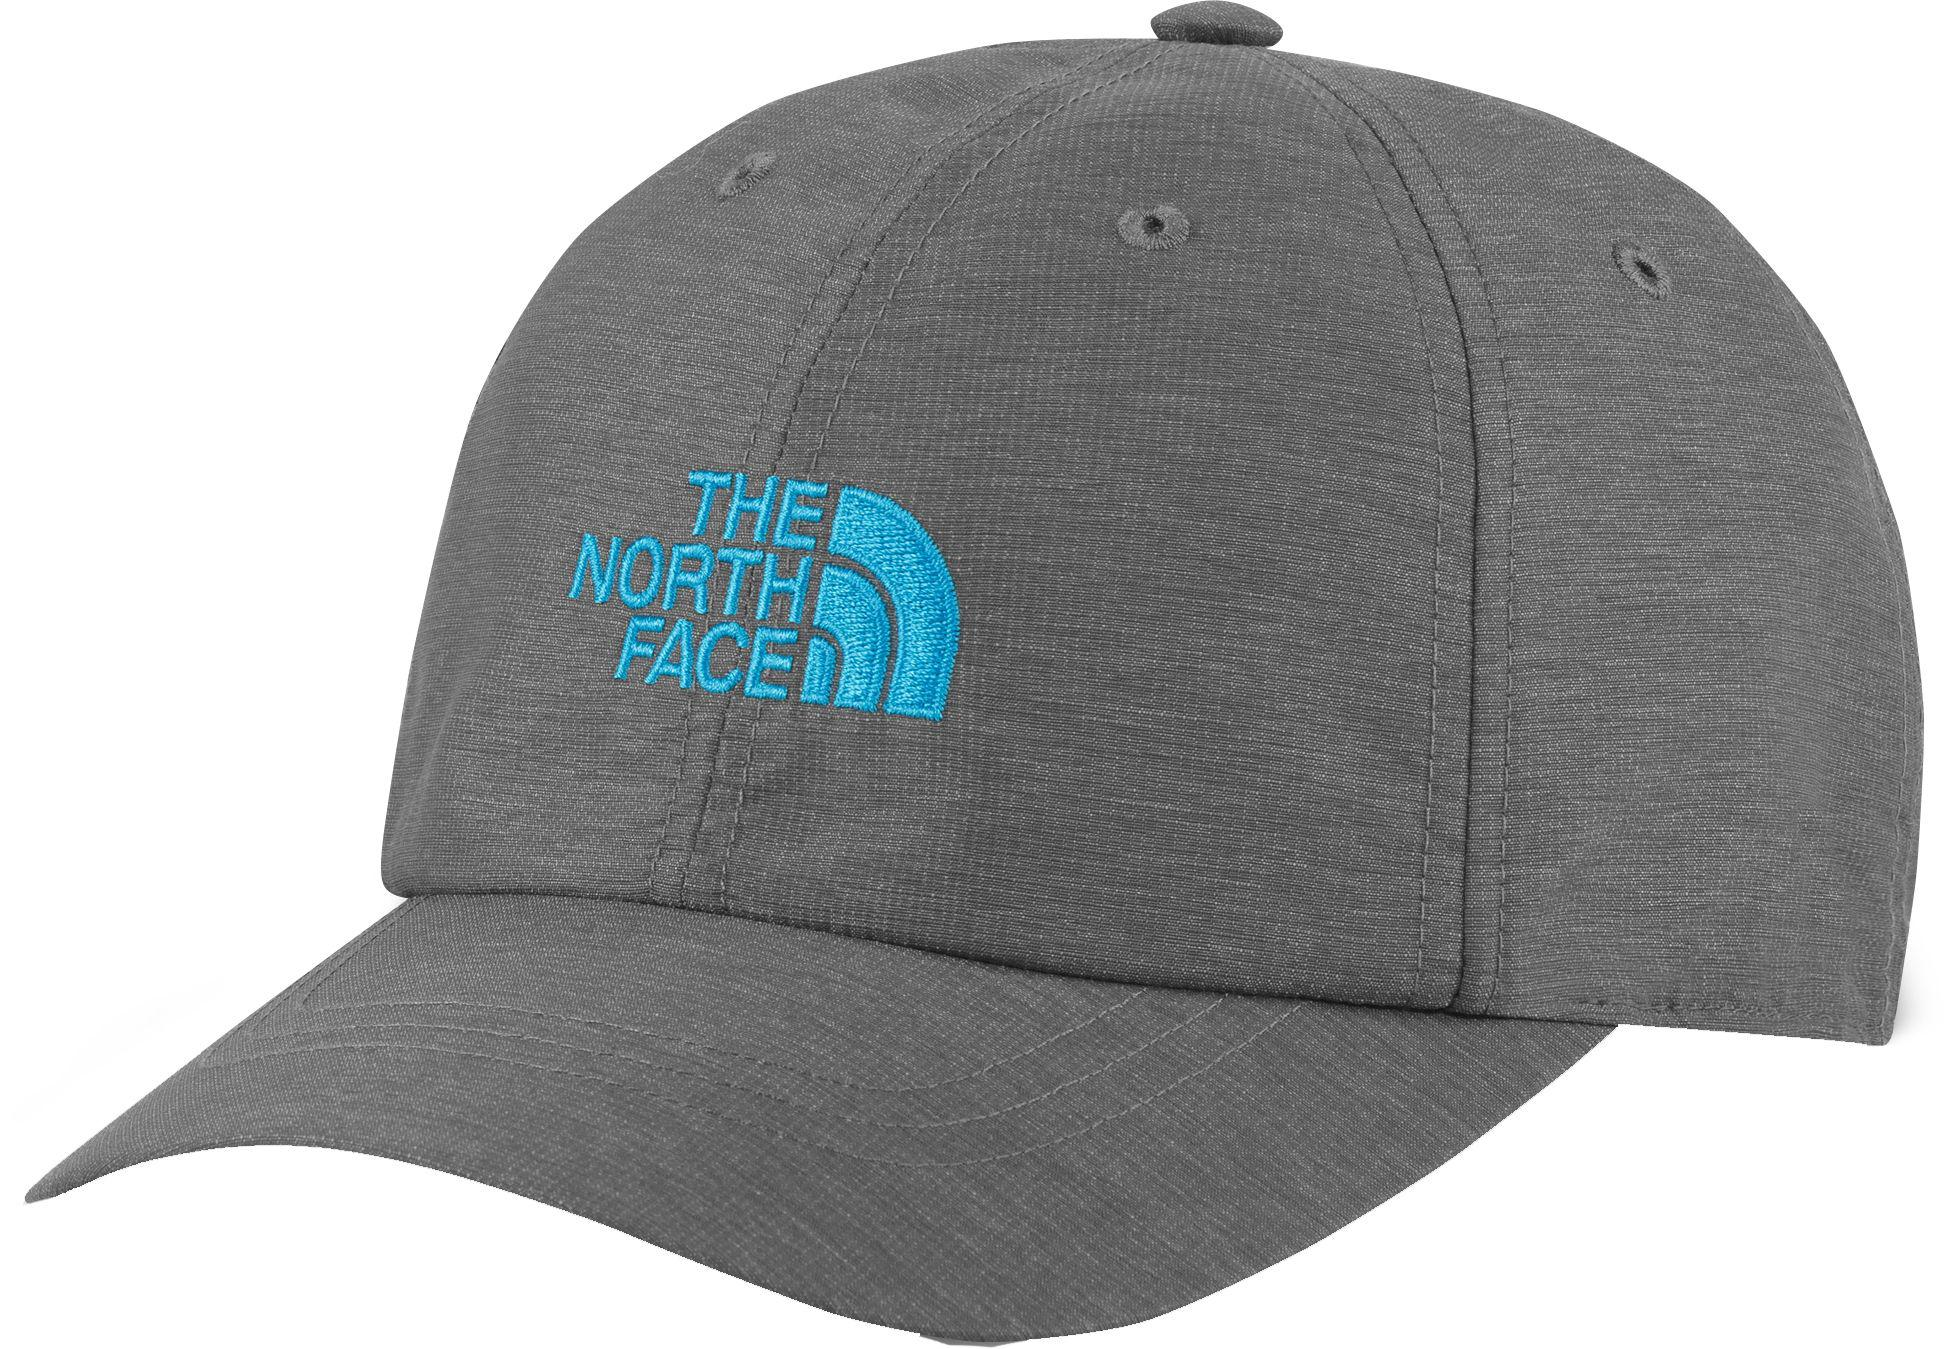 dce8be0162d28c The North Face Horizon Ball Cap in Gray for Men - Lyst